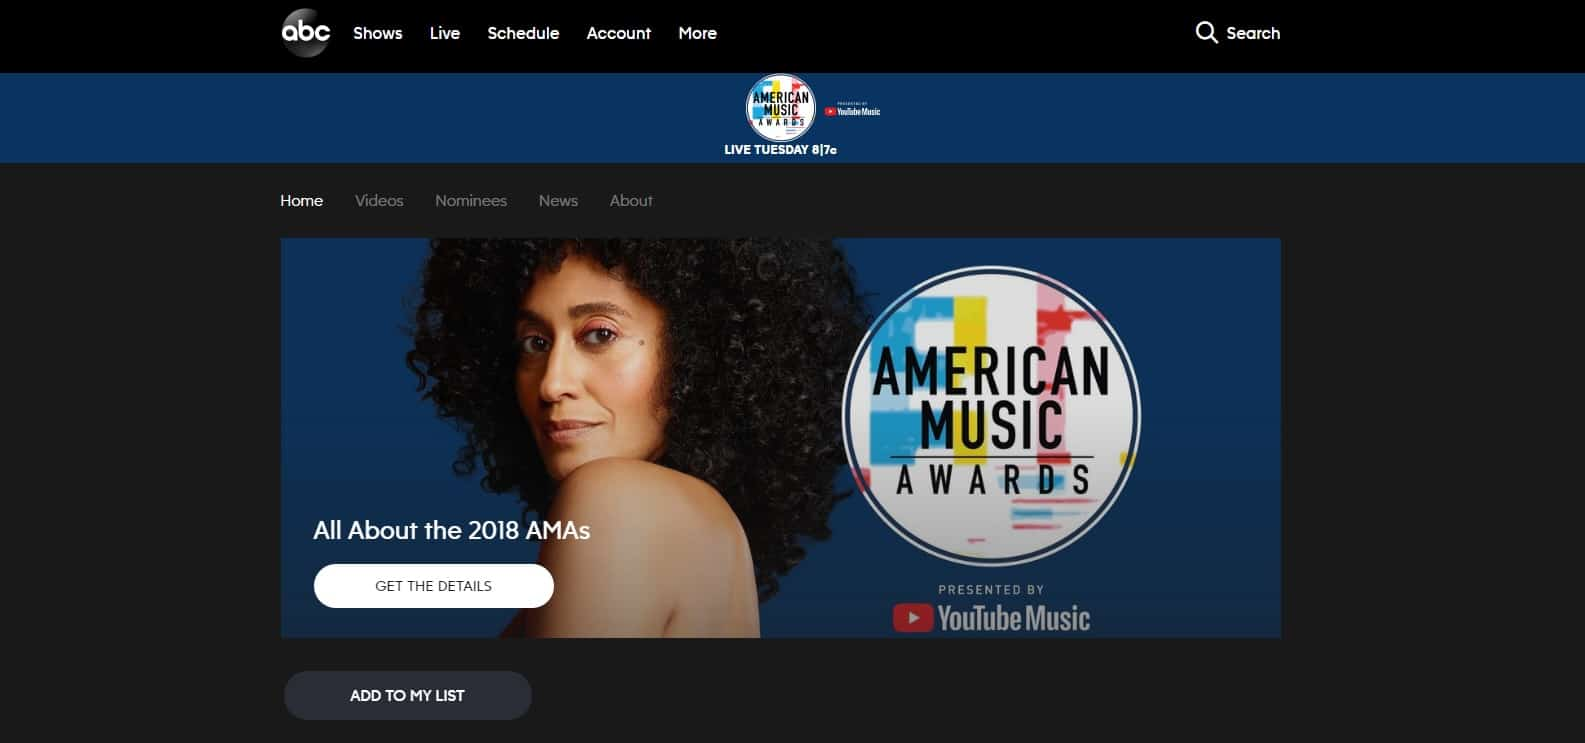 How to watch American Music Awards 2018 online